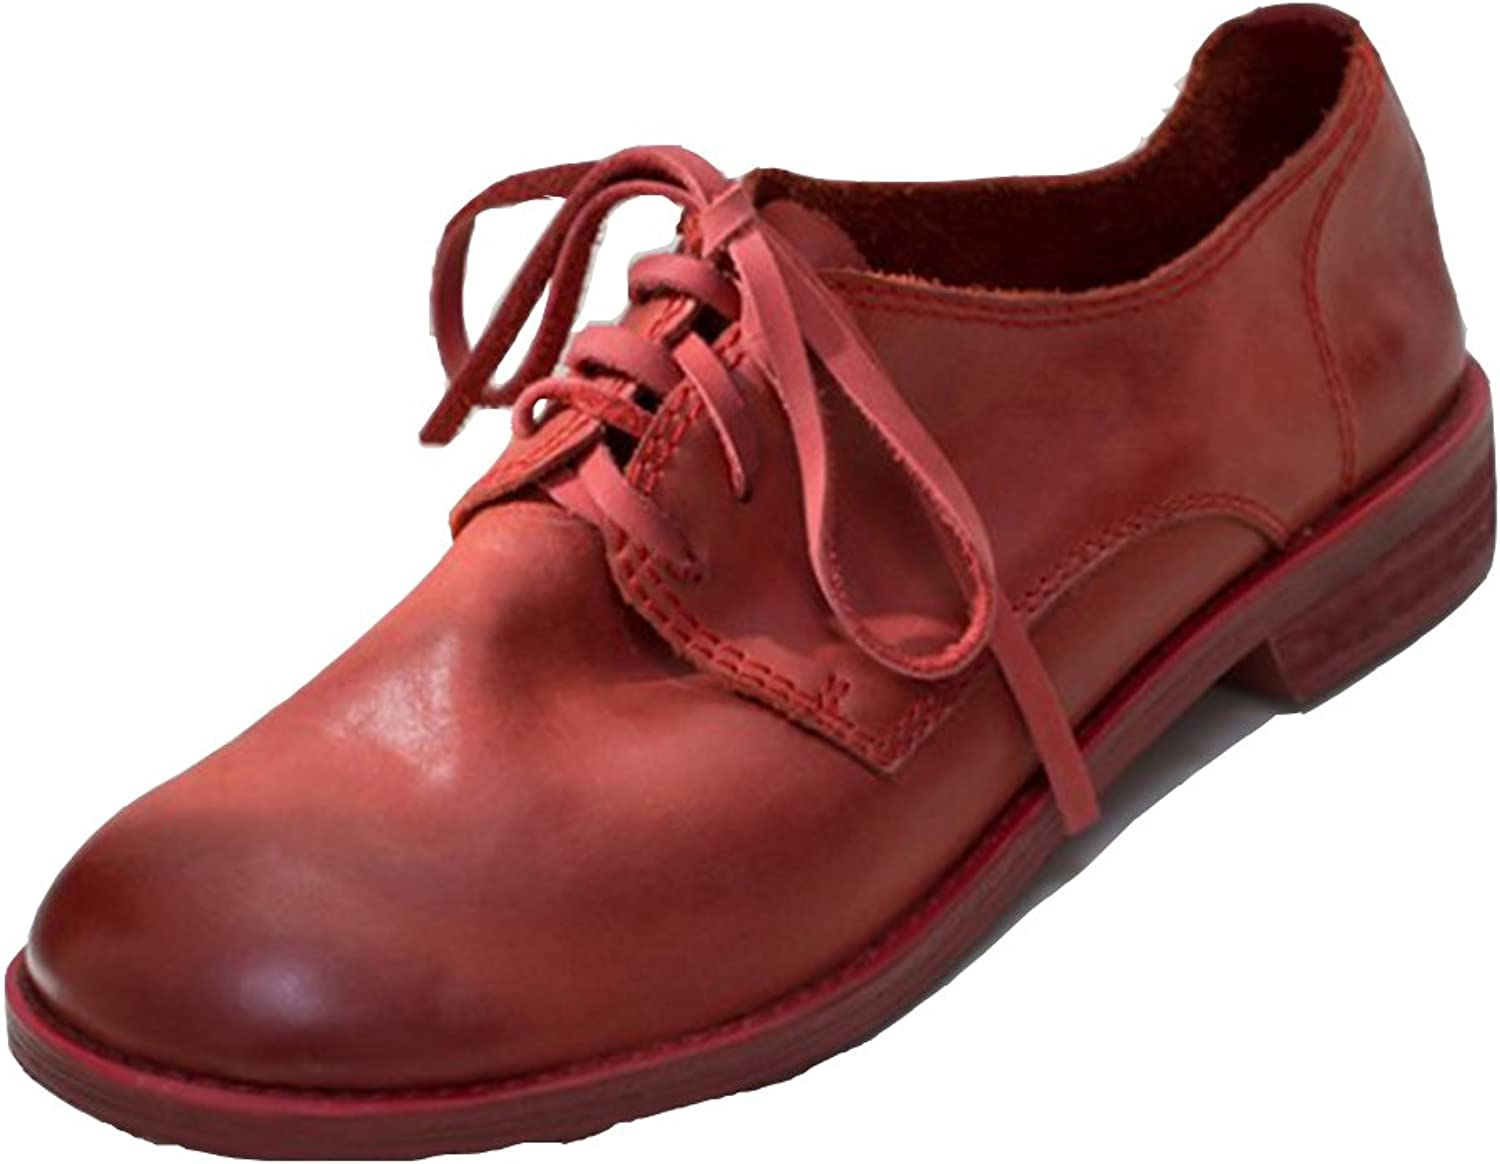 A-BUYBEA Women's 1.37  Blocked Low Heels Round Toe Leather Derby shoes(with 2 Pairs of shoeslace) 4.5-8.5